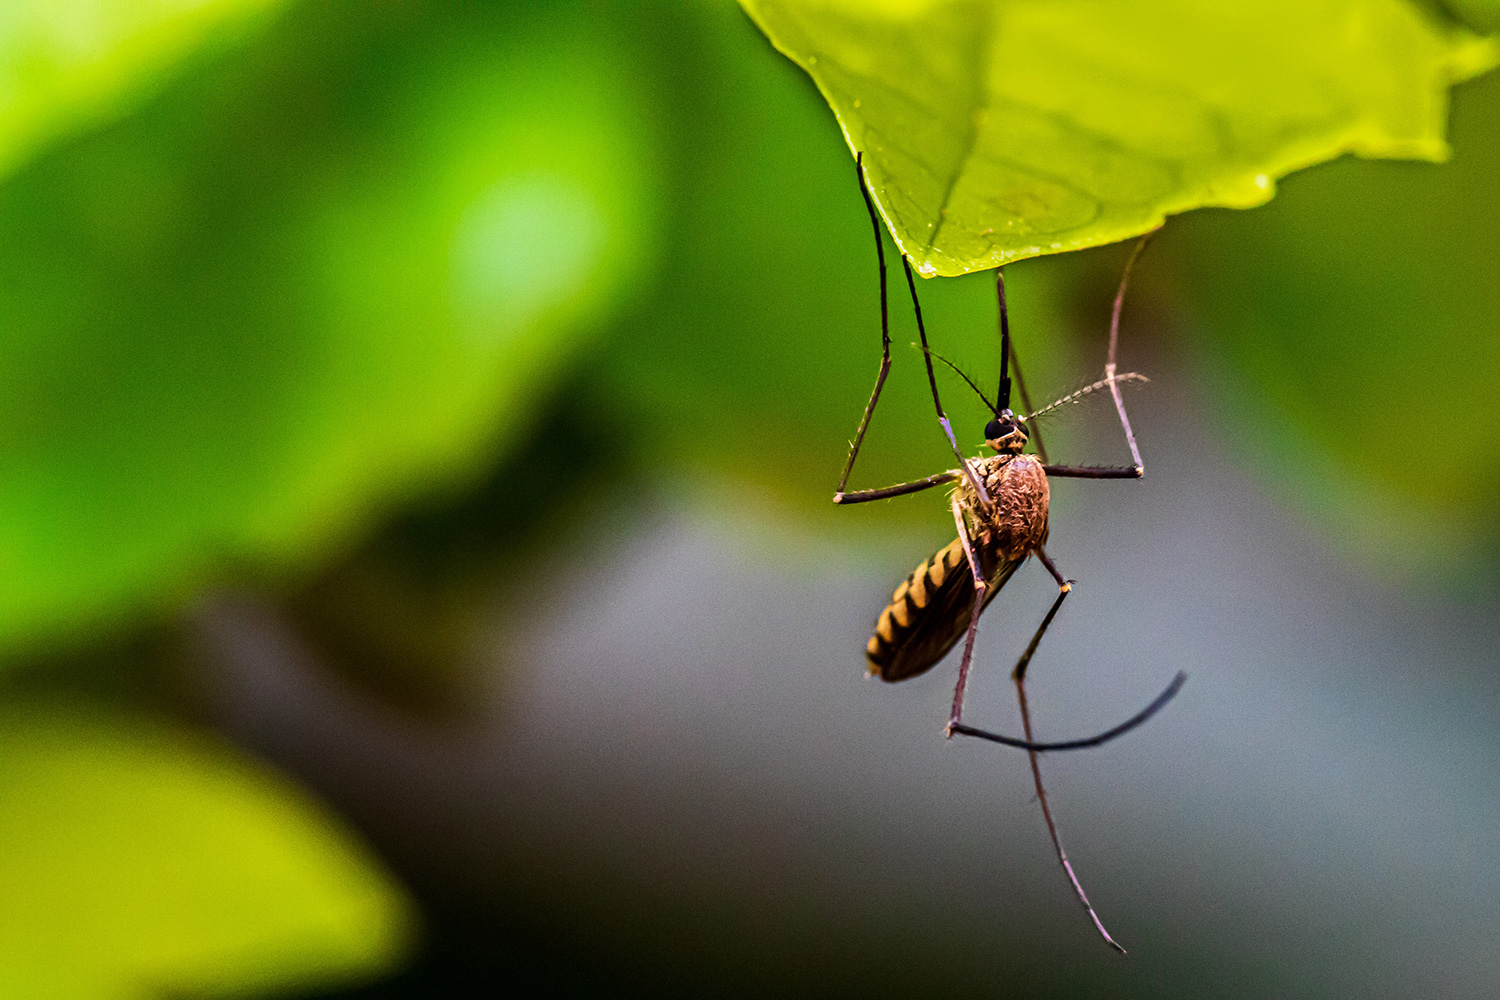 How_to_Get_Rid_of_Mosquitoes_without_Harming_Bees_Other_Pollinators